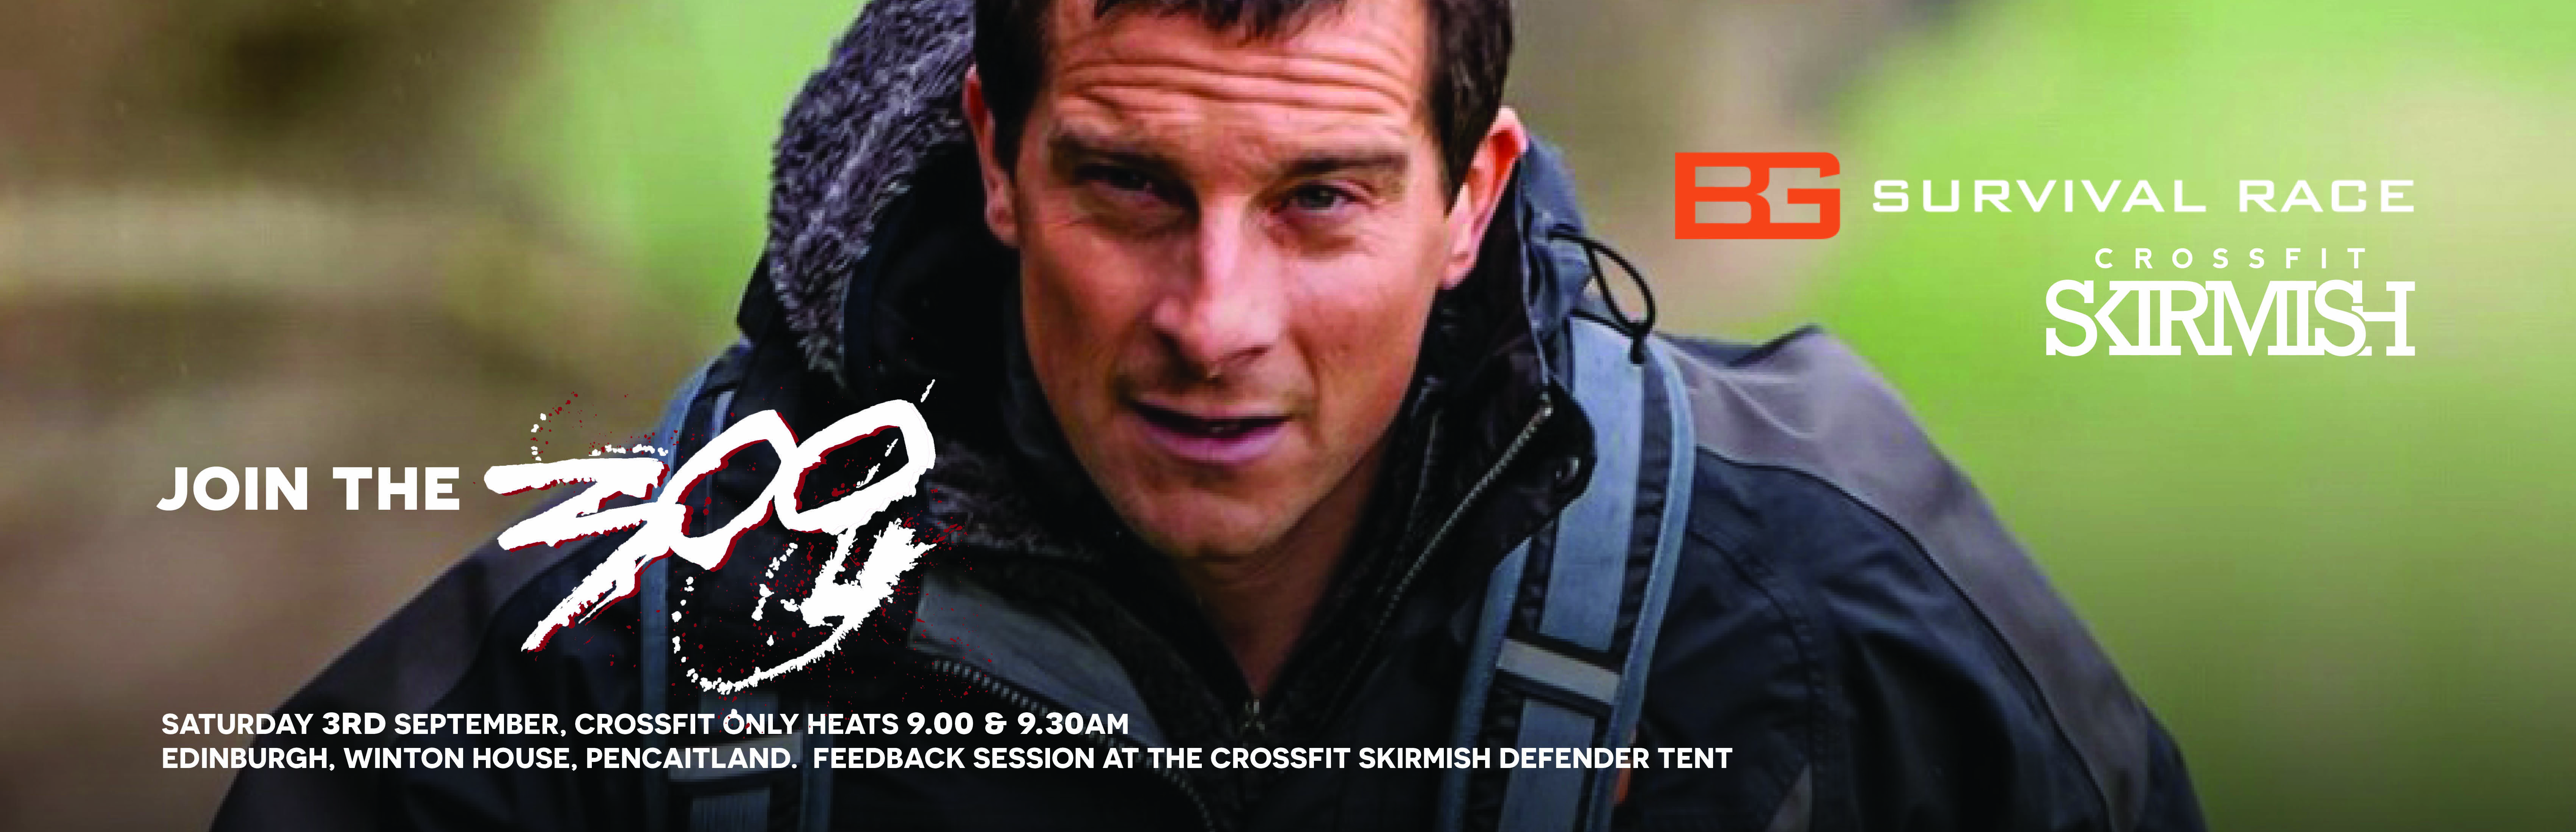 The CrossFit 300 test out Bear Grylls' new Survival Race, Sat 3rd September 2016